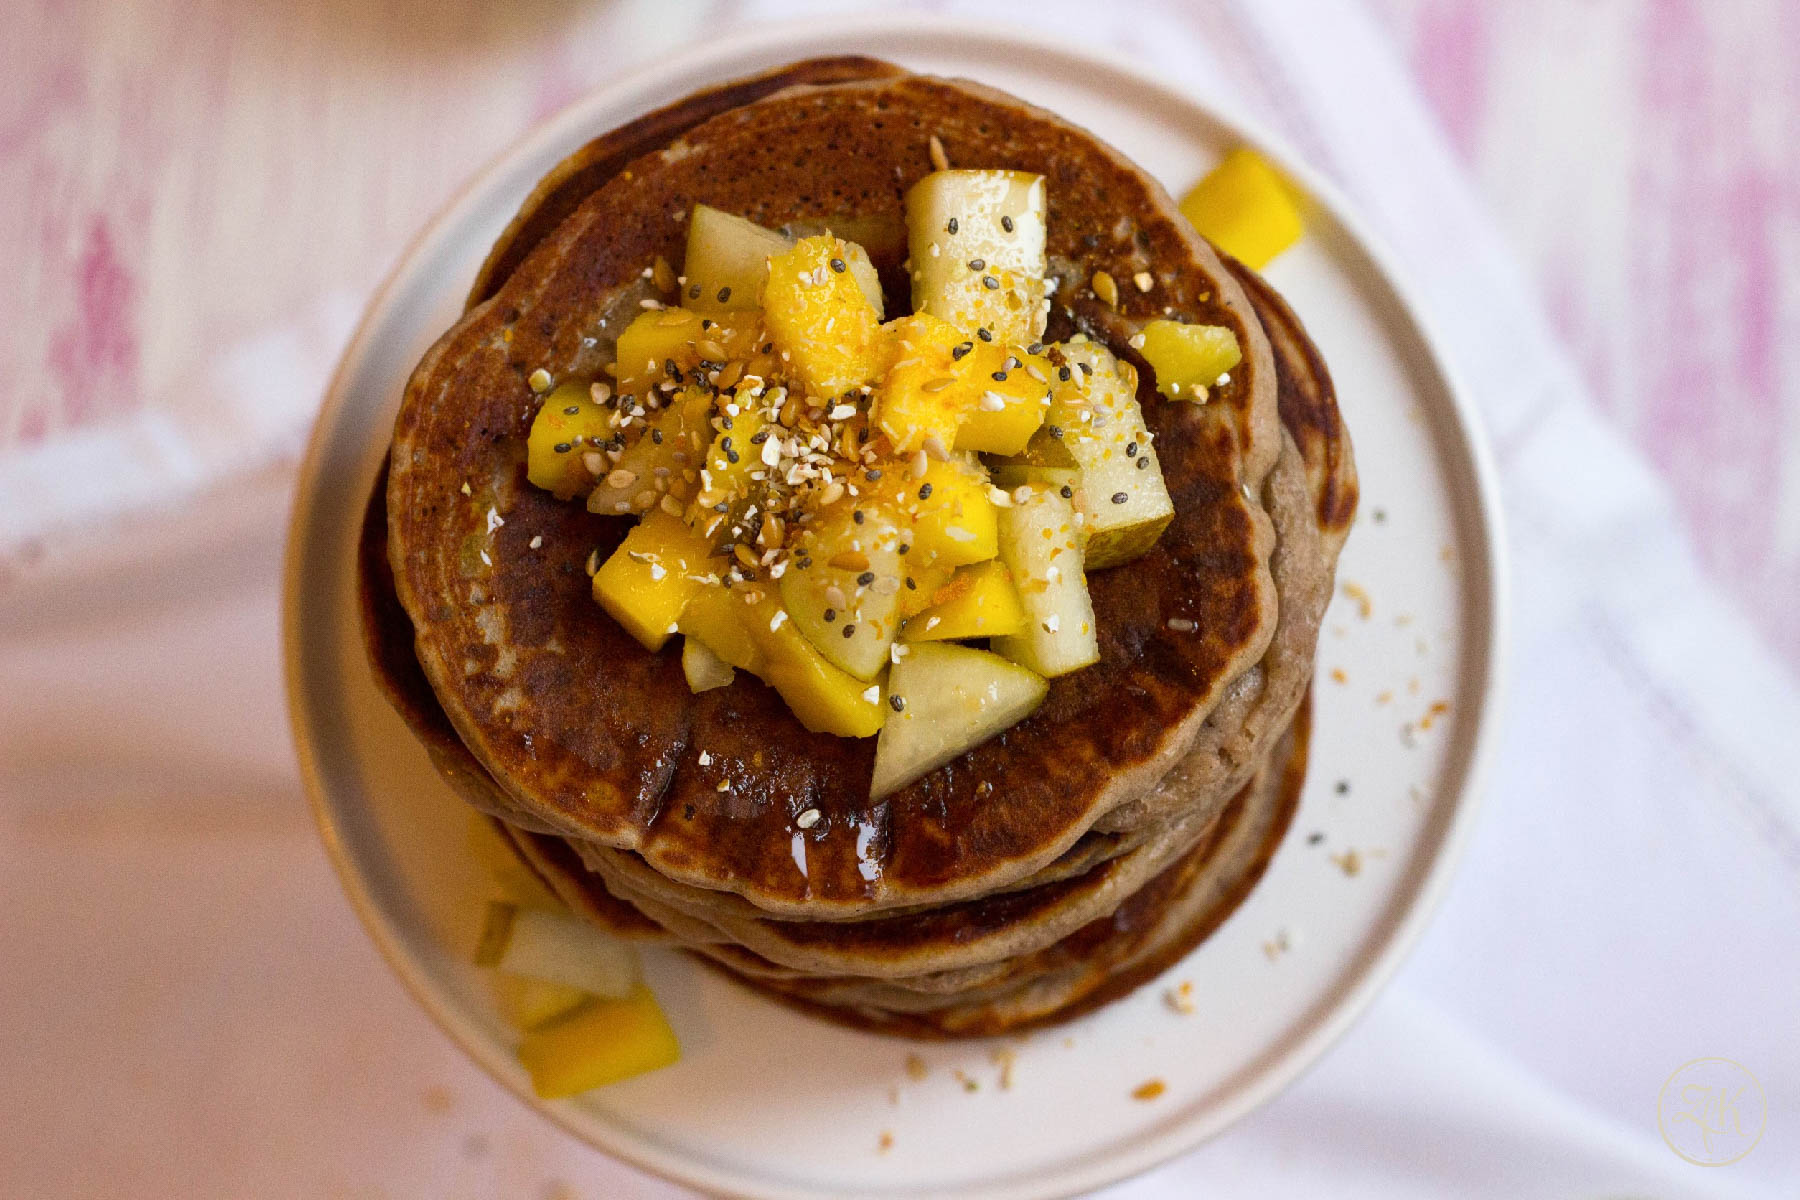 Obstsalat trifft Pancakes